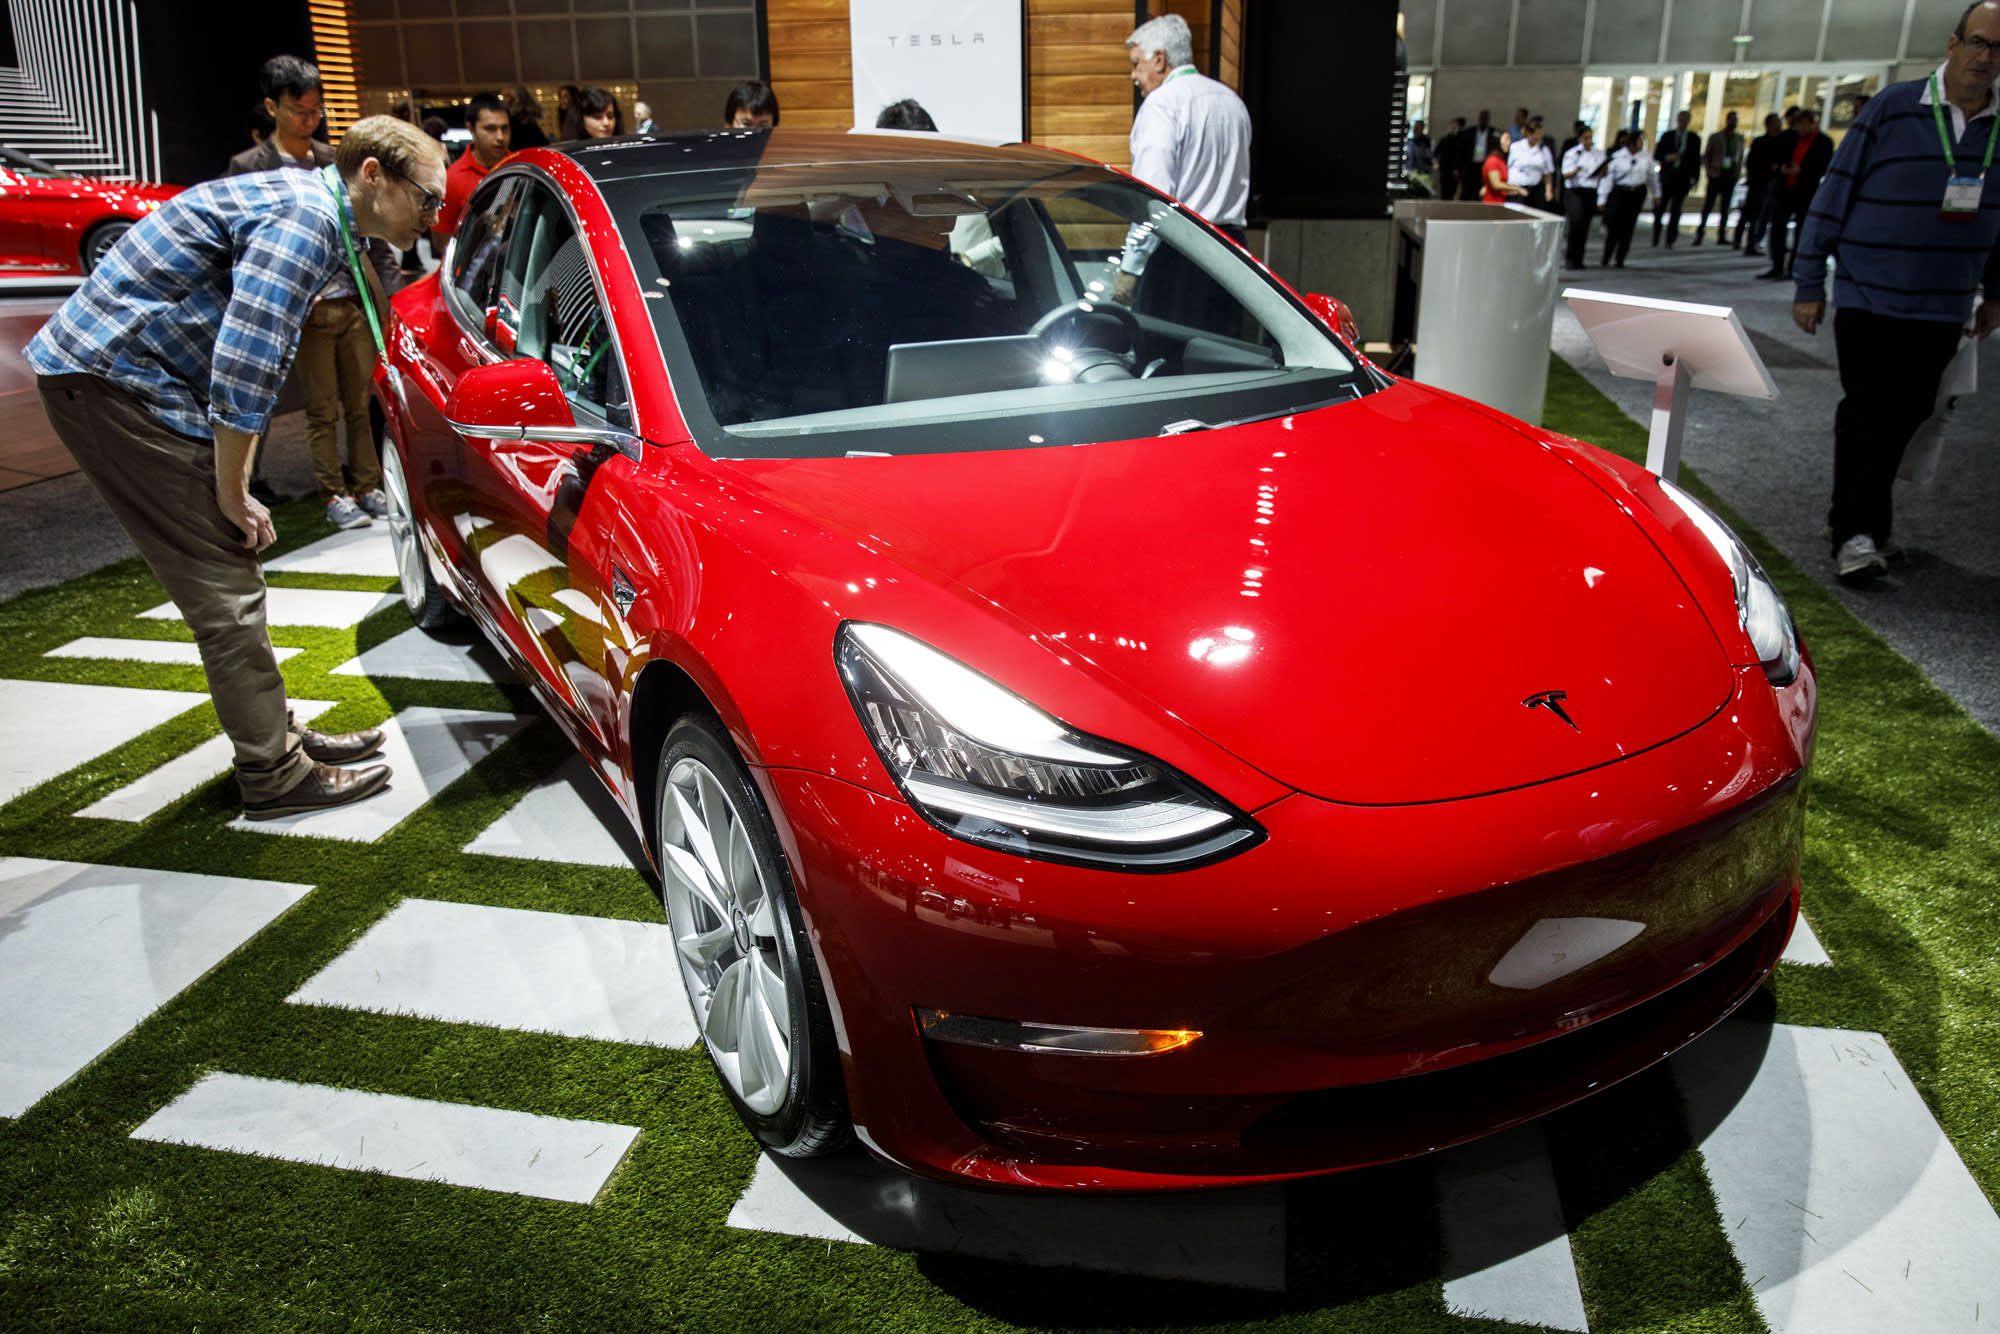 Tesla shares fall after Consumer Reports says it will no longer recommend Model 3